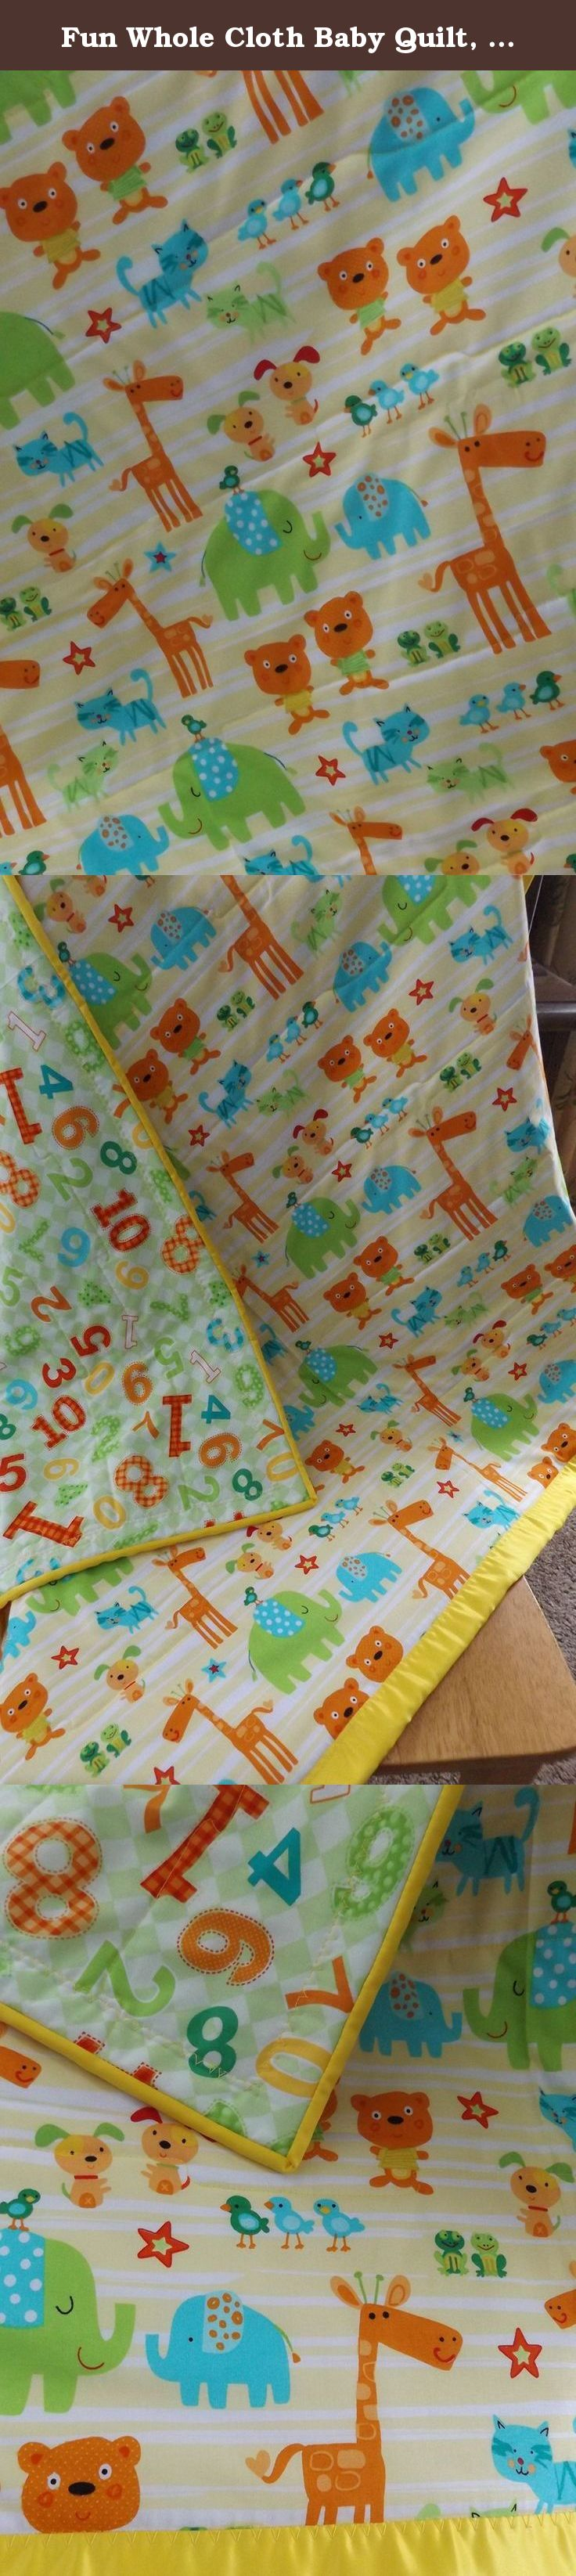 Baby quilts bed covers - Crib Quilts Baby Quilt Giraffes Elephants Crib Blanket Mommy And Me Bed Covers The Double Nursery Bedding